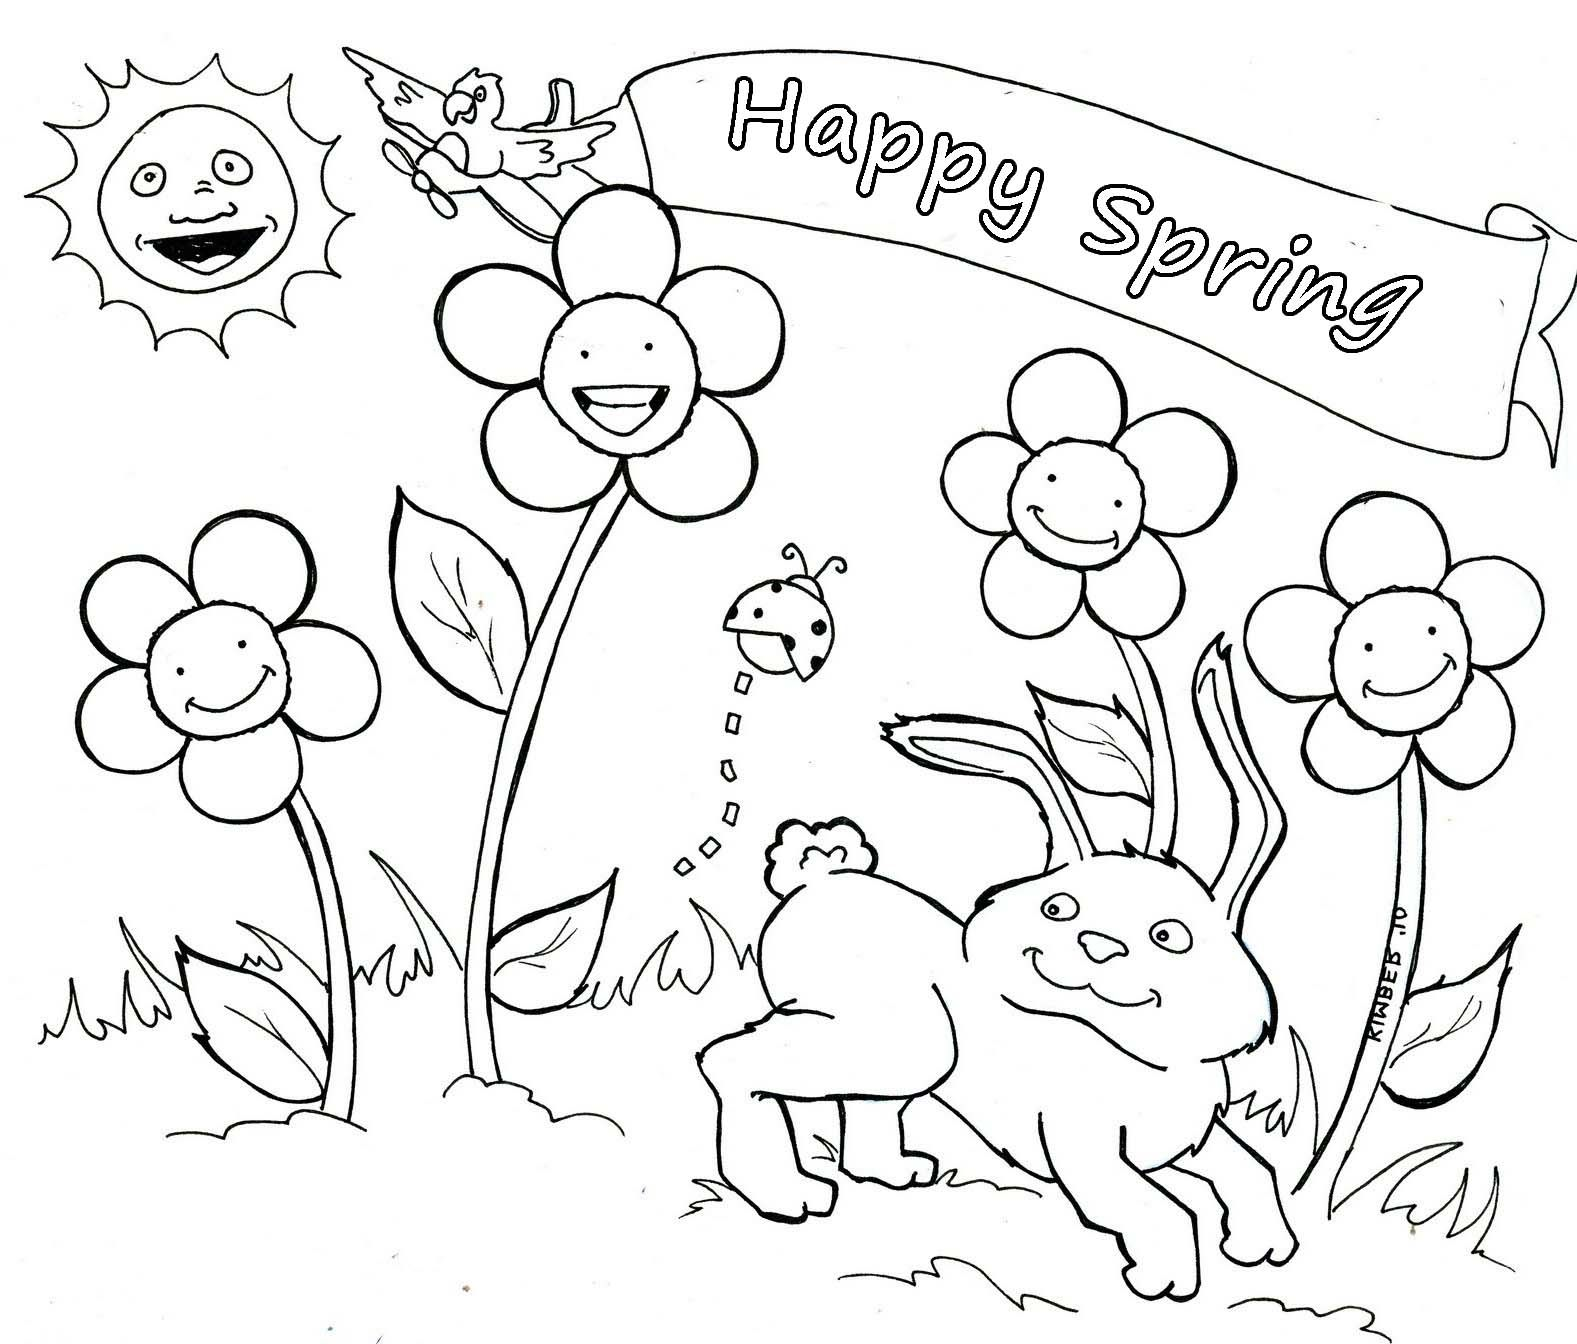 Happy Spring Coloring Pages Kids Spring Coloring Pages Spring